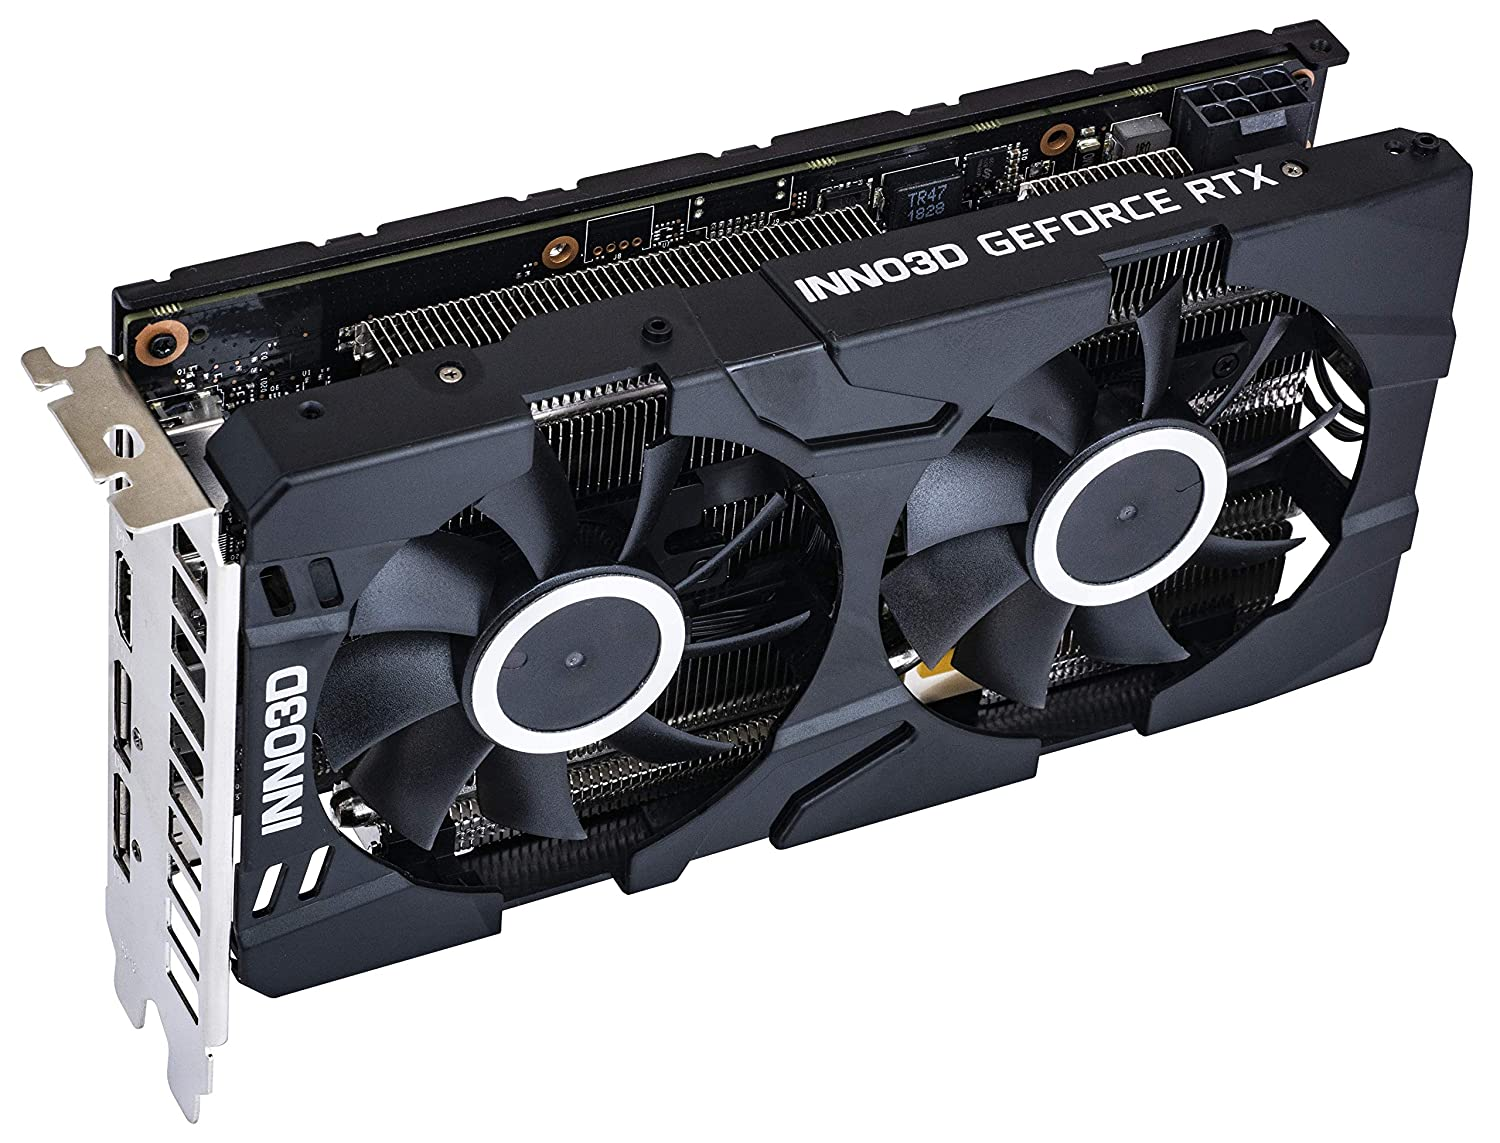 Image result for Inno3D Nvidia Gaming Geforce RTX 2060 Twin X2 6Gb Gddr6 Graphic Card